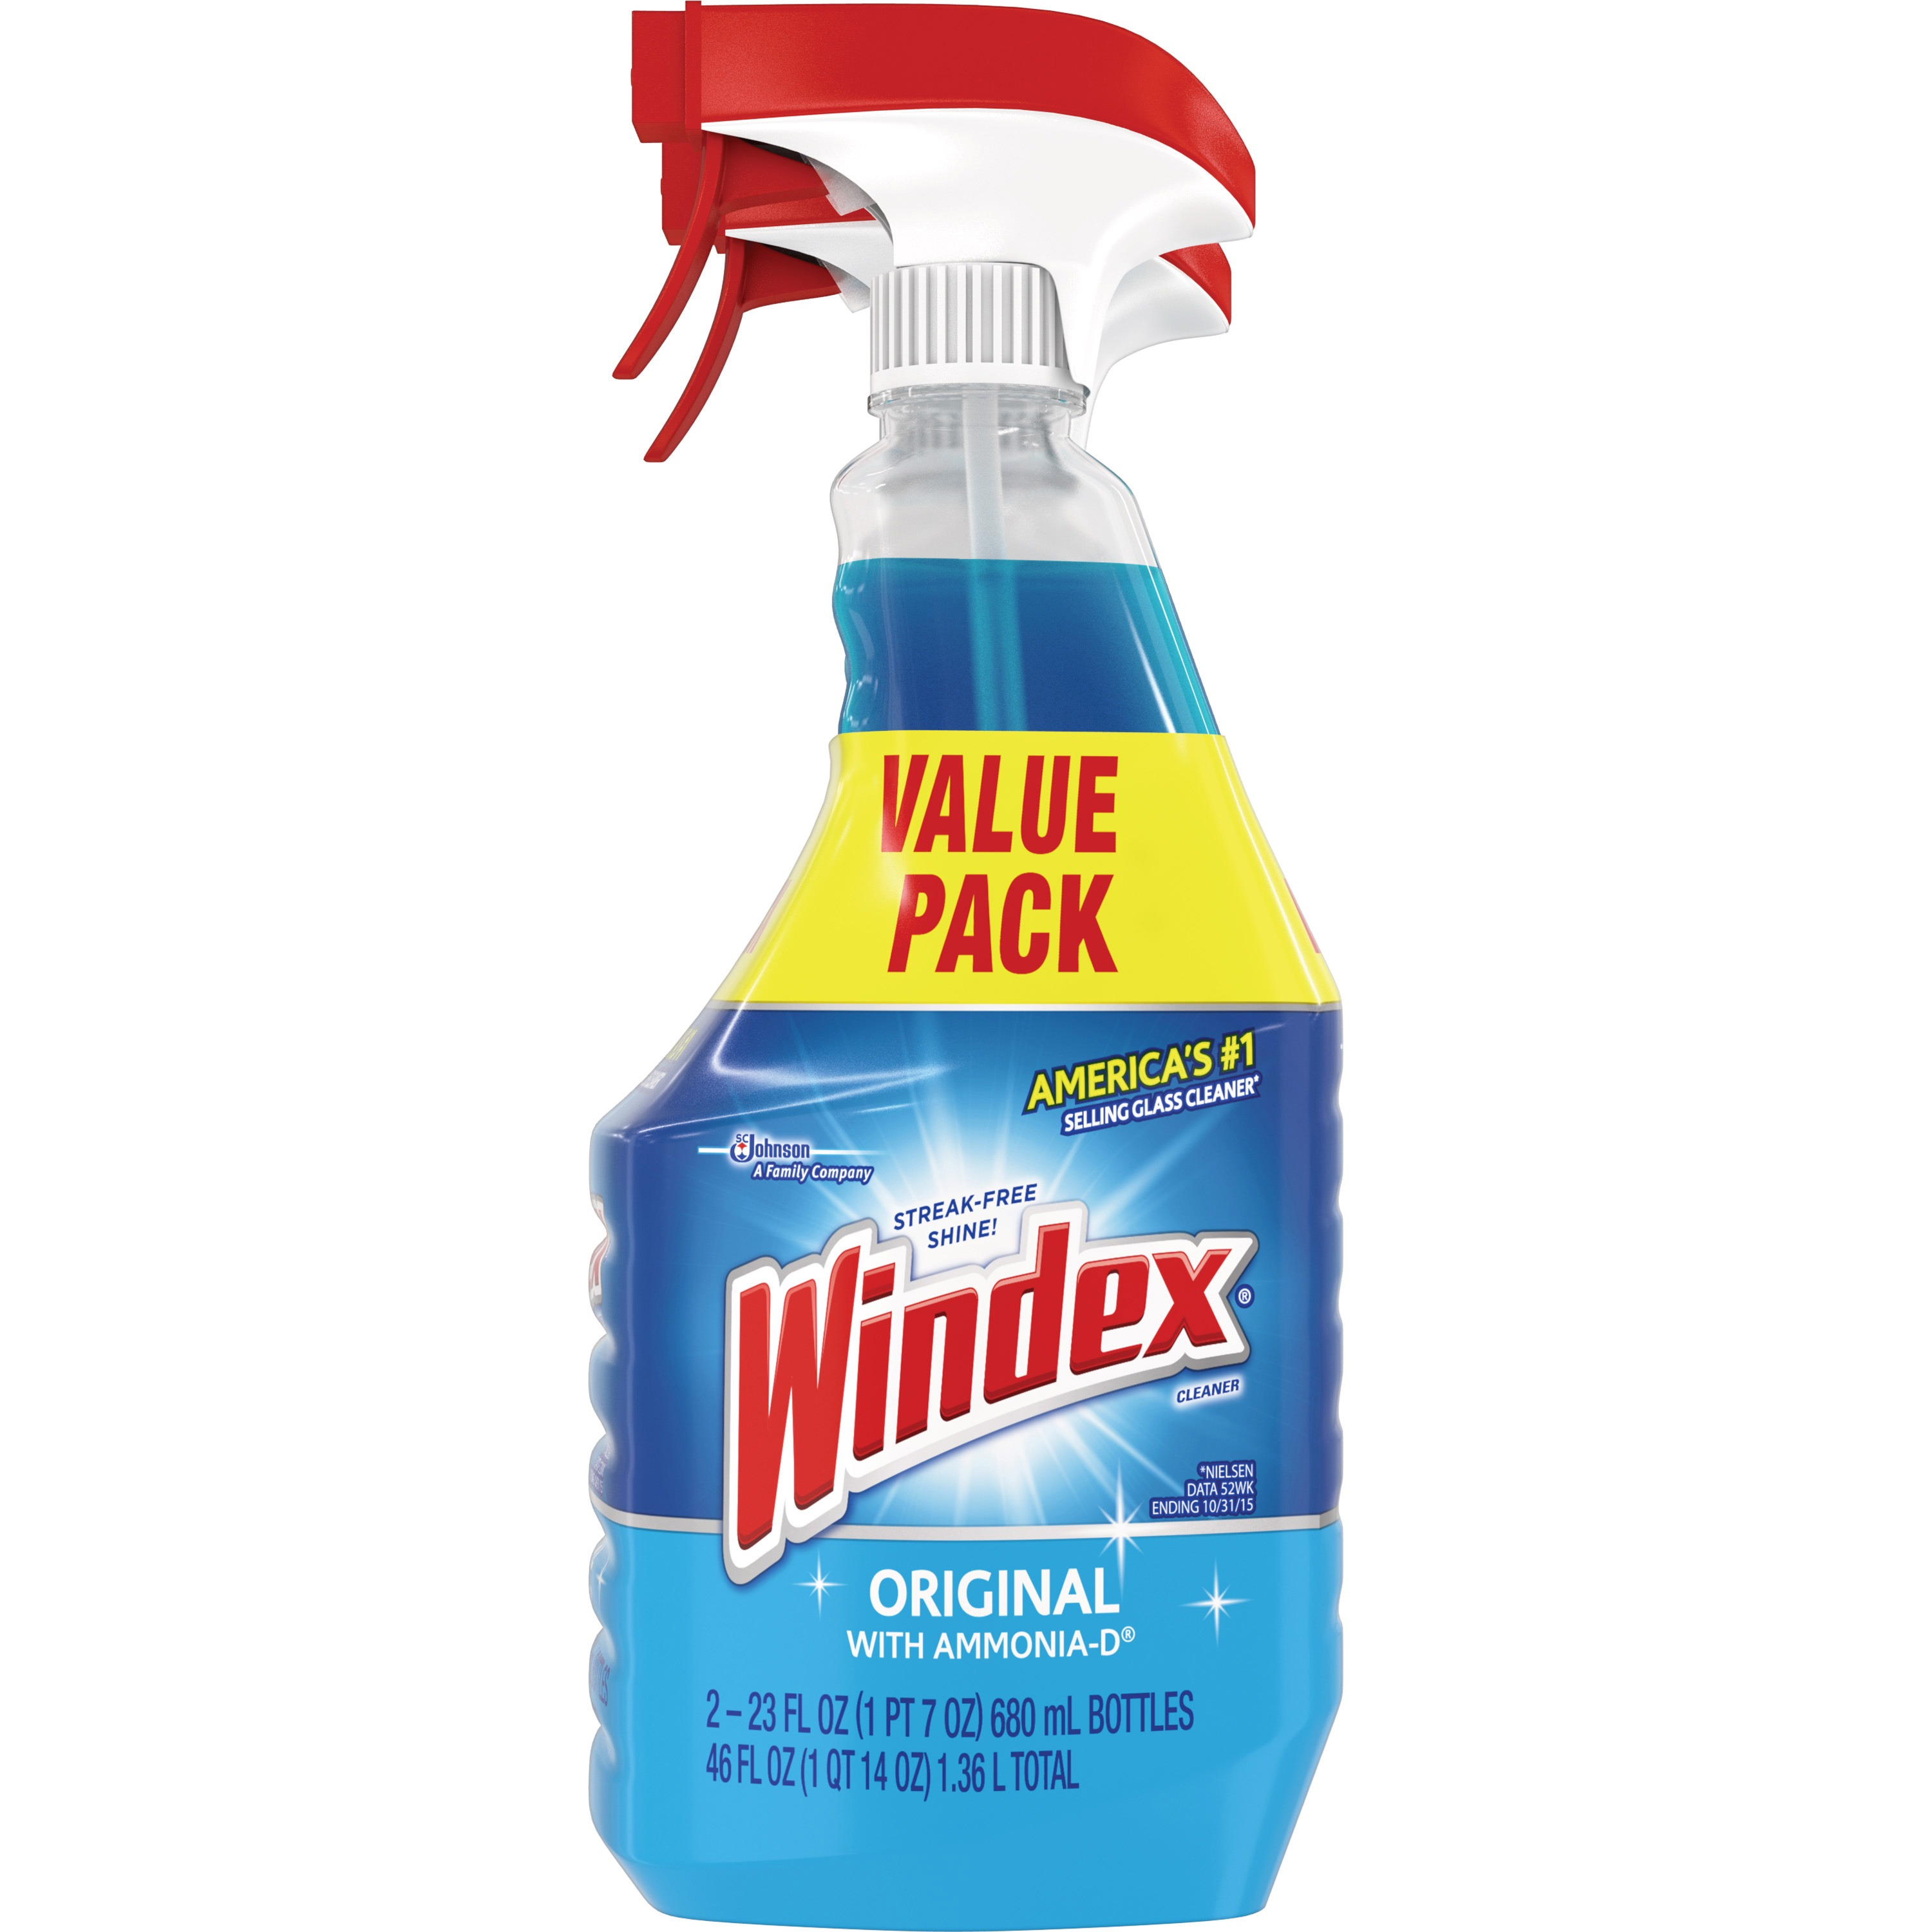 Windex Original Glass Cleaner Value Pack